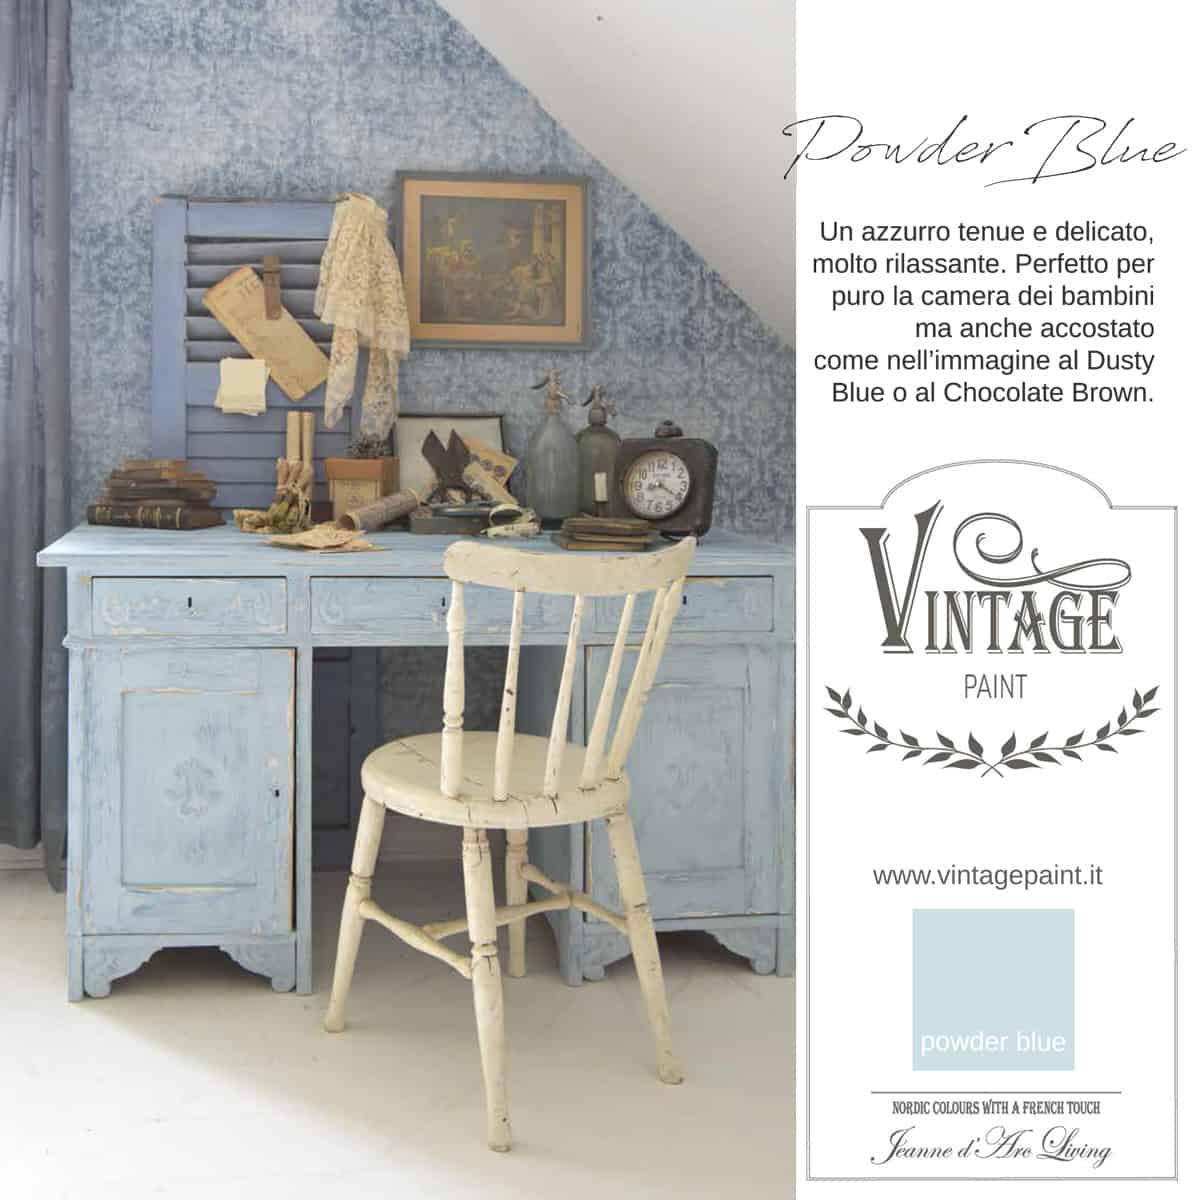 powder blue blu azzurro vintage chalk paint vernici shabby chic autentico look gesso